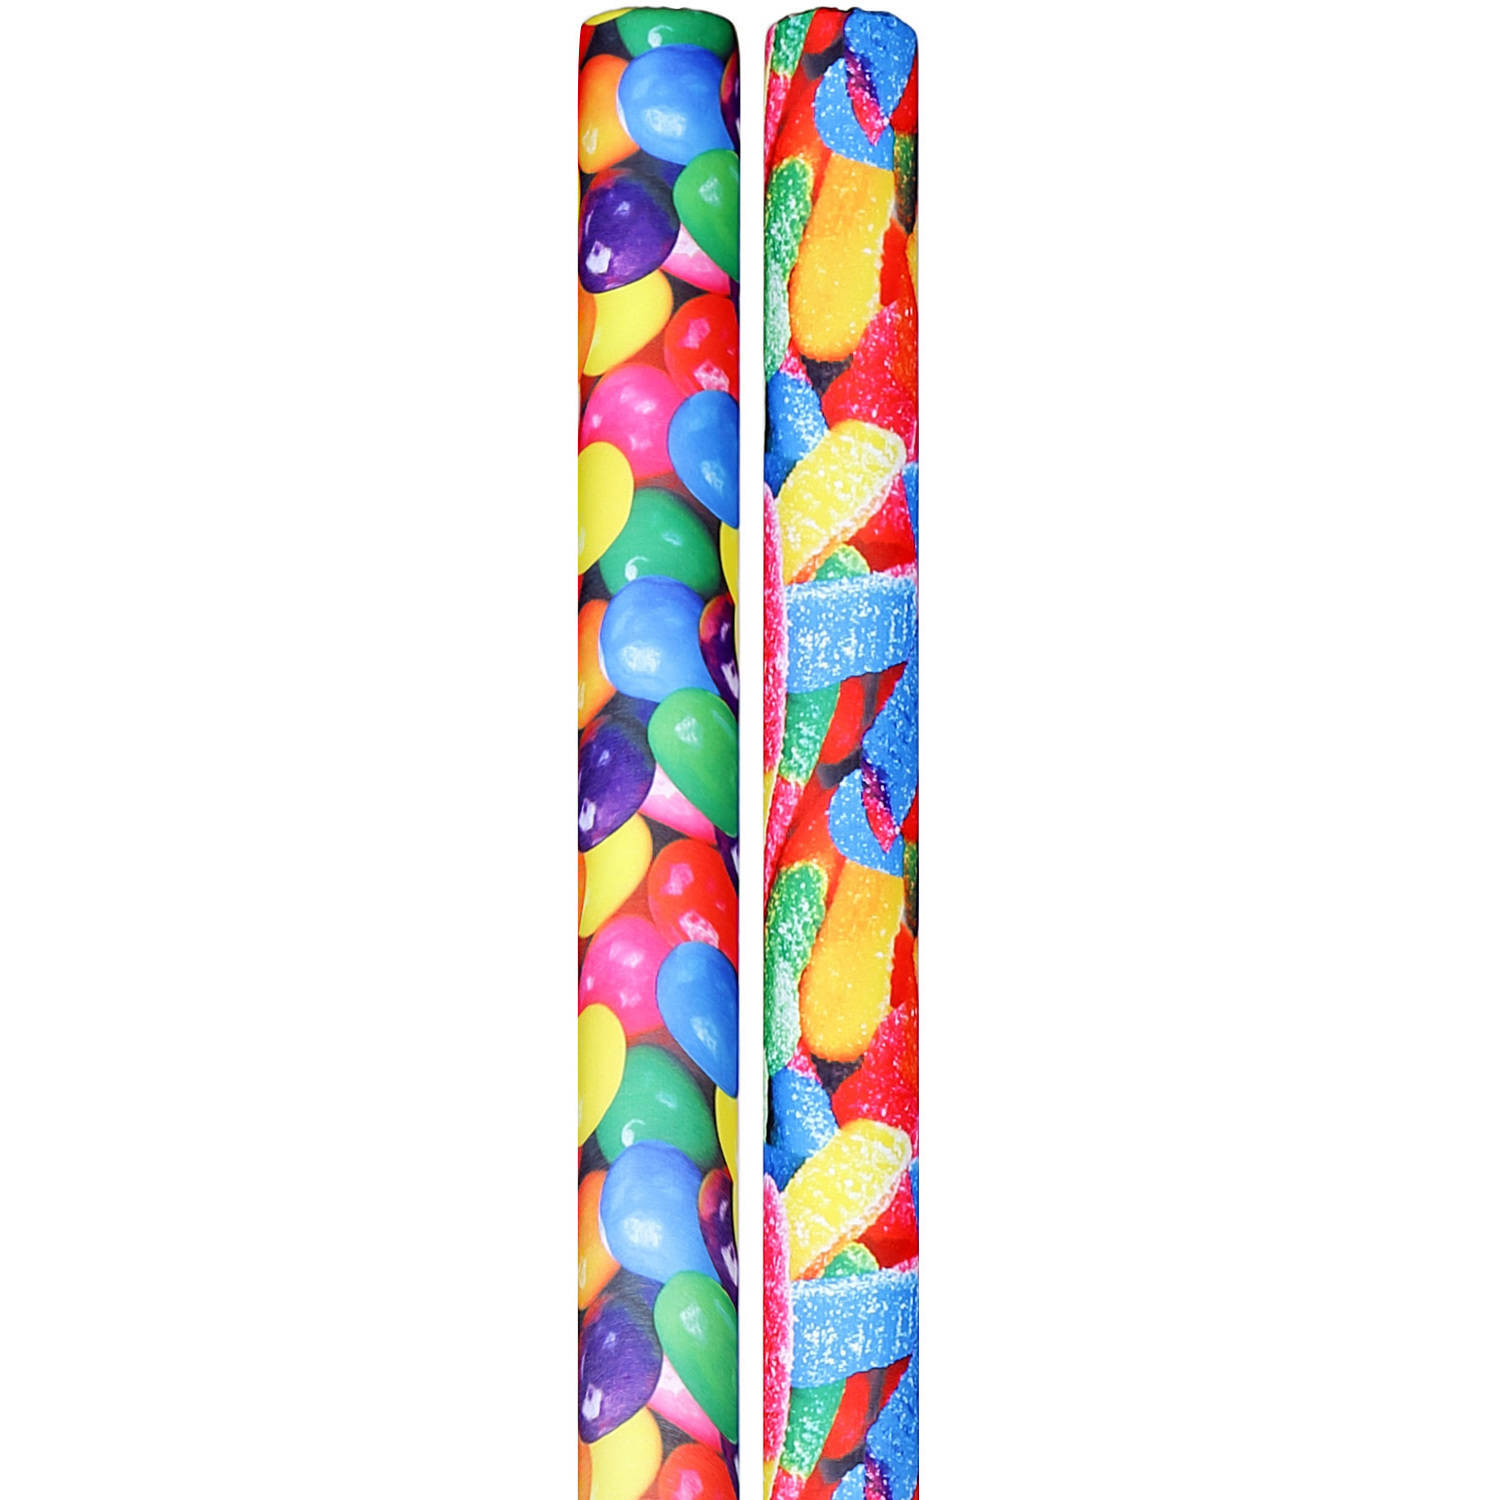 Designer Noodle Pool Noodles Bundle, Gumballs and Sour Gummy Worms